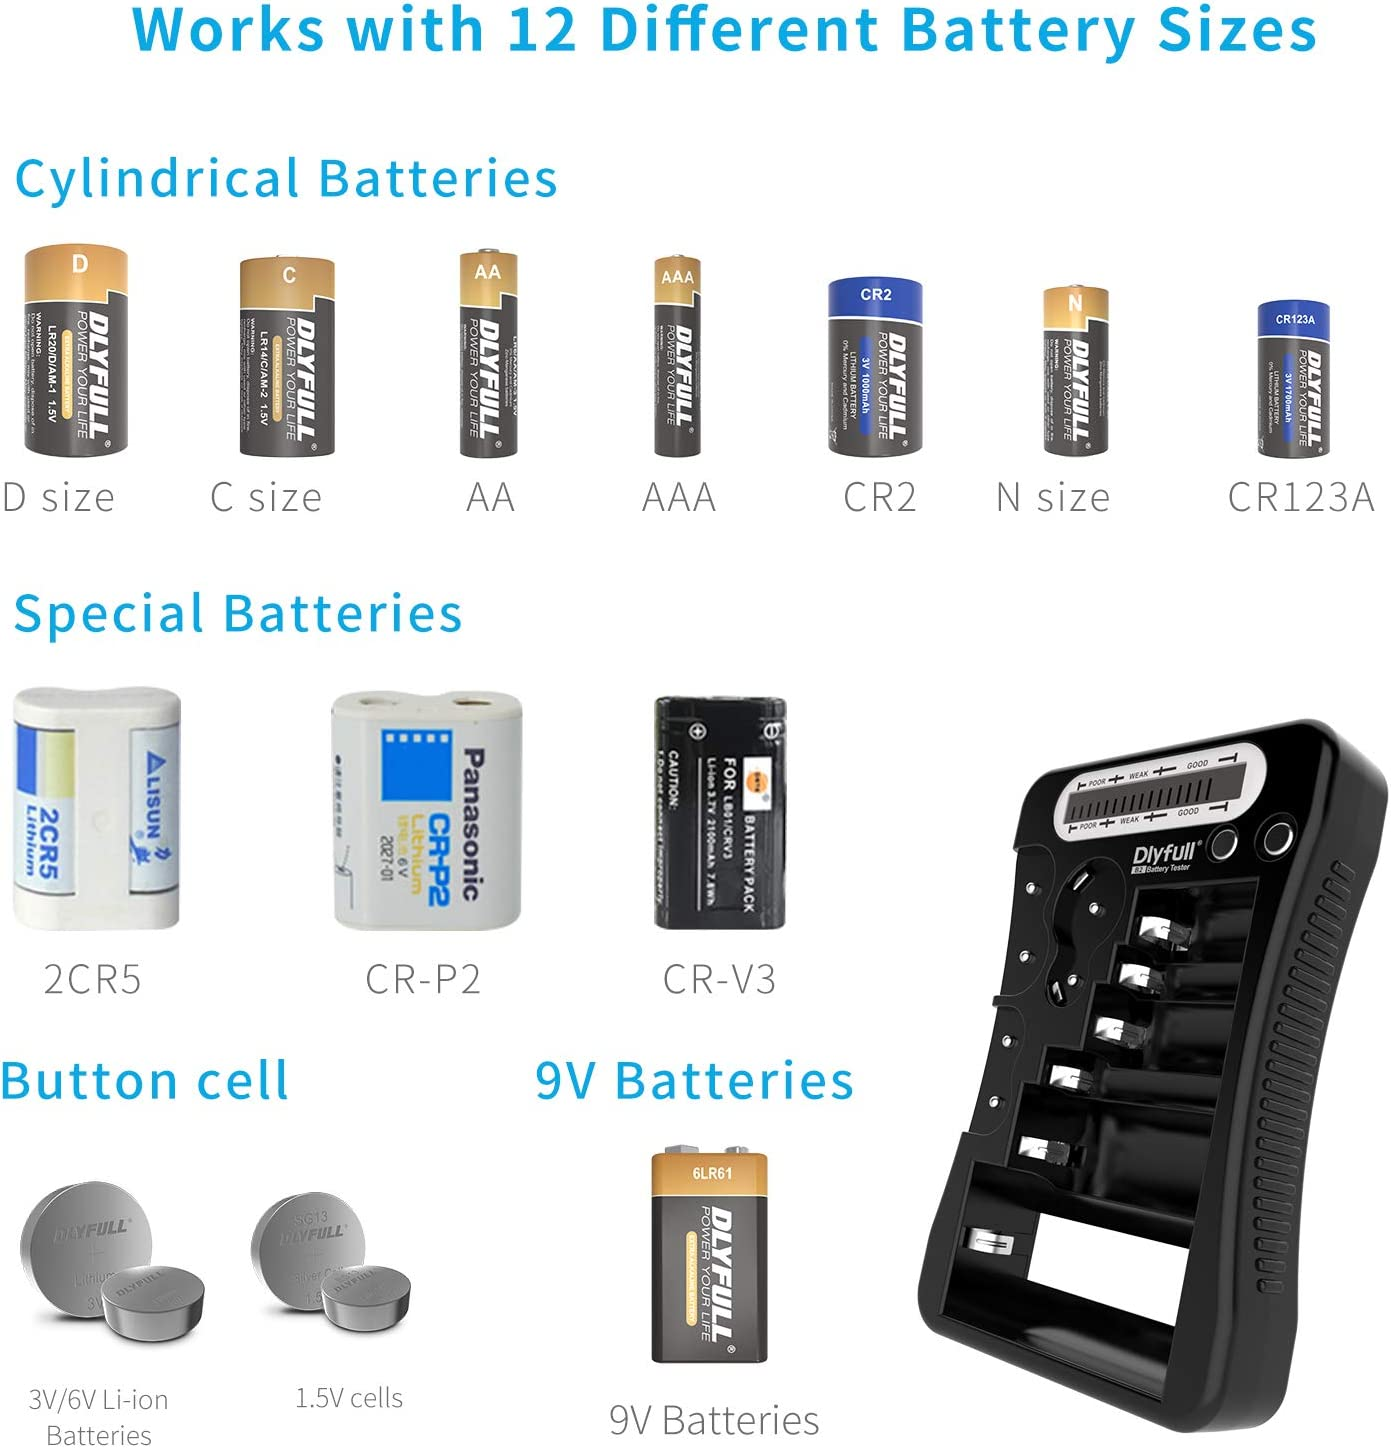 Multi Purpose Small Battery Checker for AA AAA C D 9V CR2032 CR123A CR2 CRV3 2CR5 CRP2 1.5V//3V Button Cell Batteries Dlyfull Universal Battery Tester with LCD Display Black